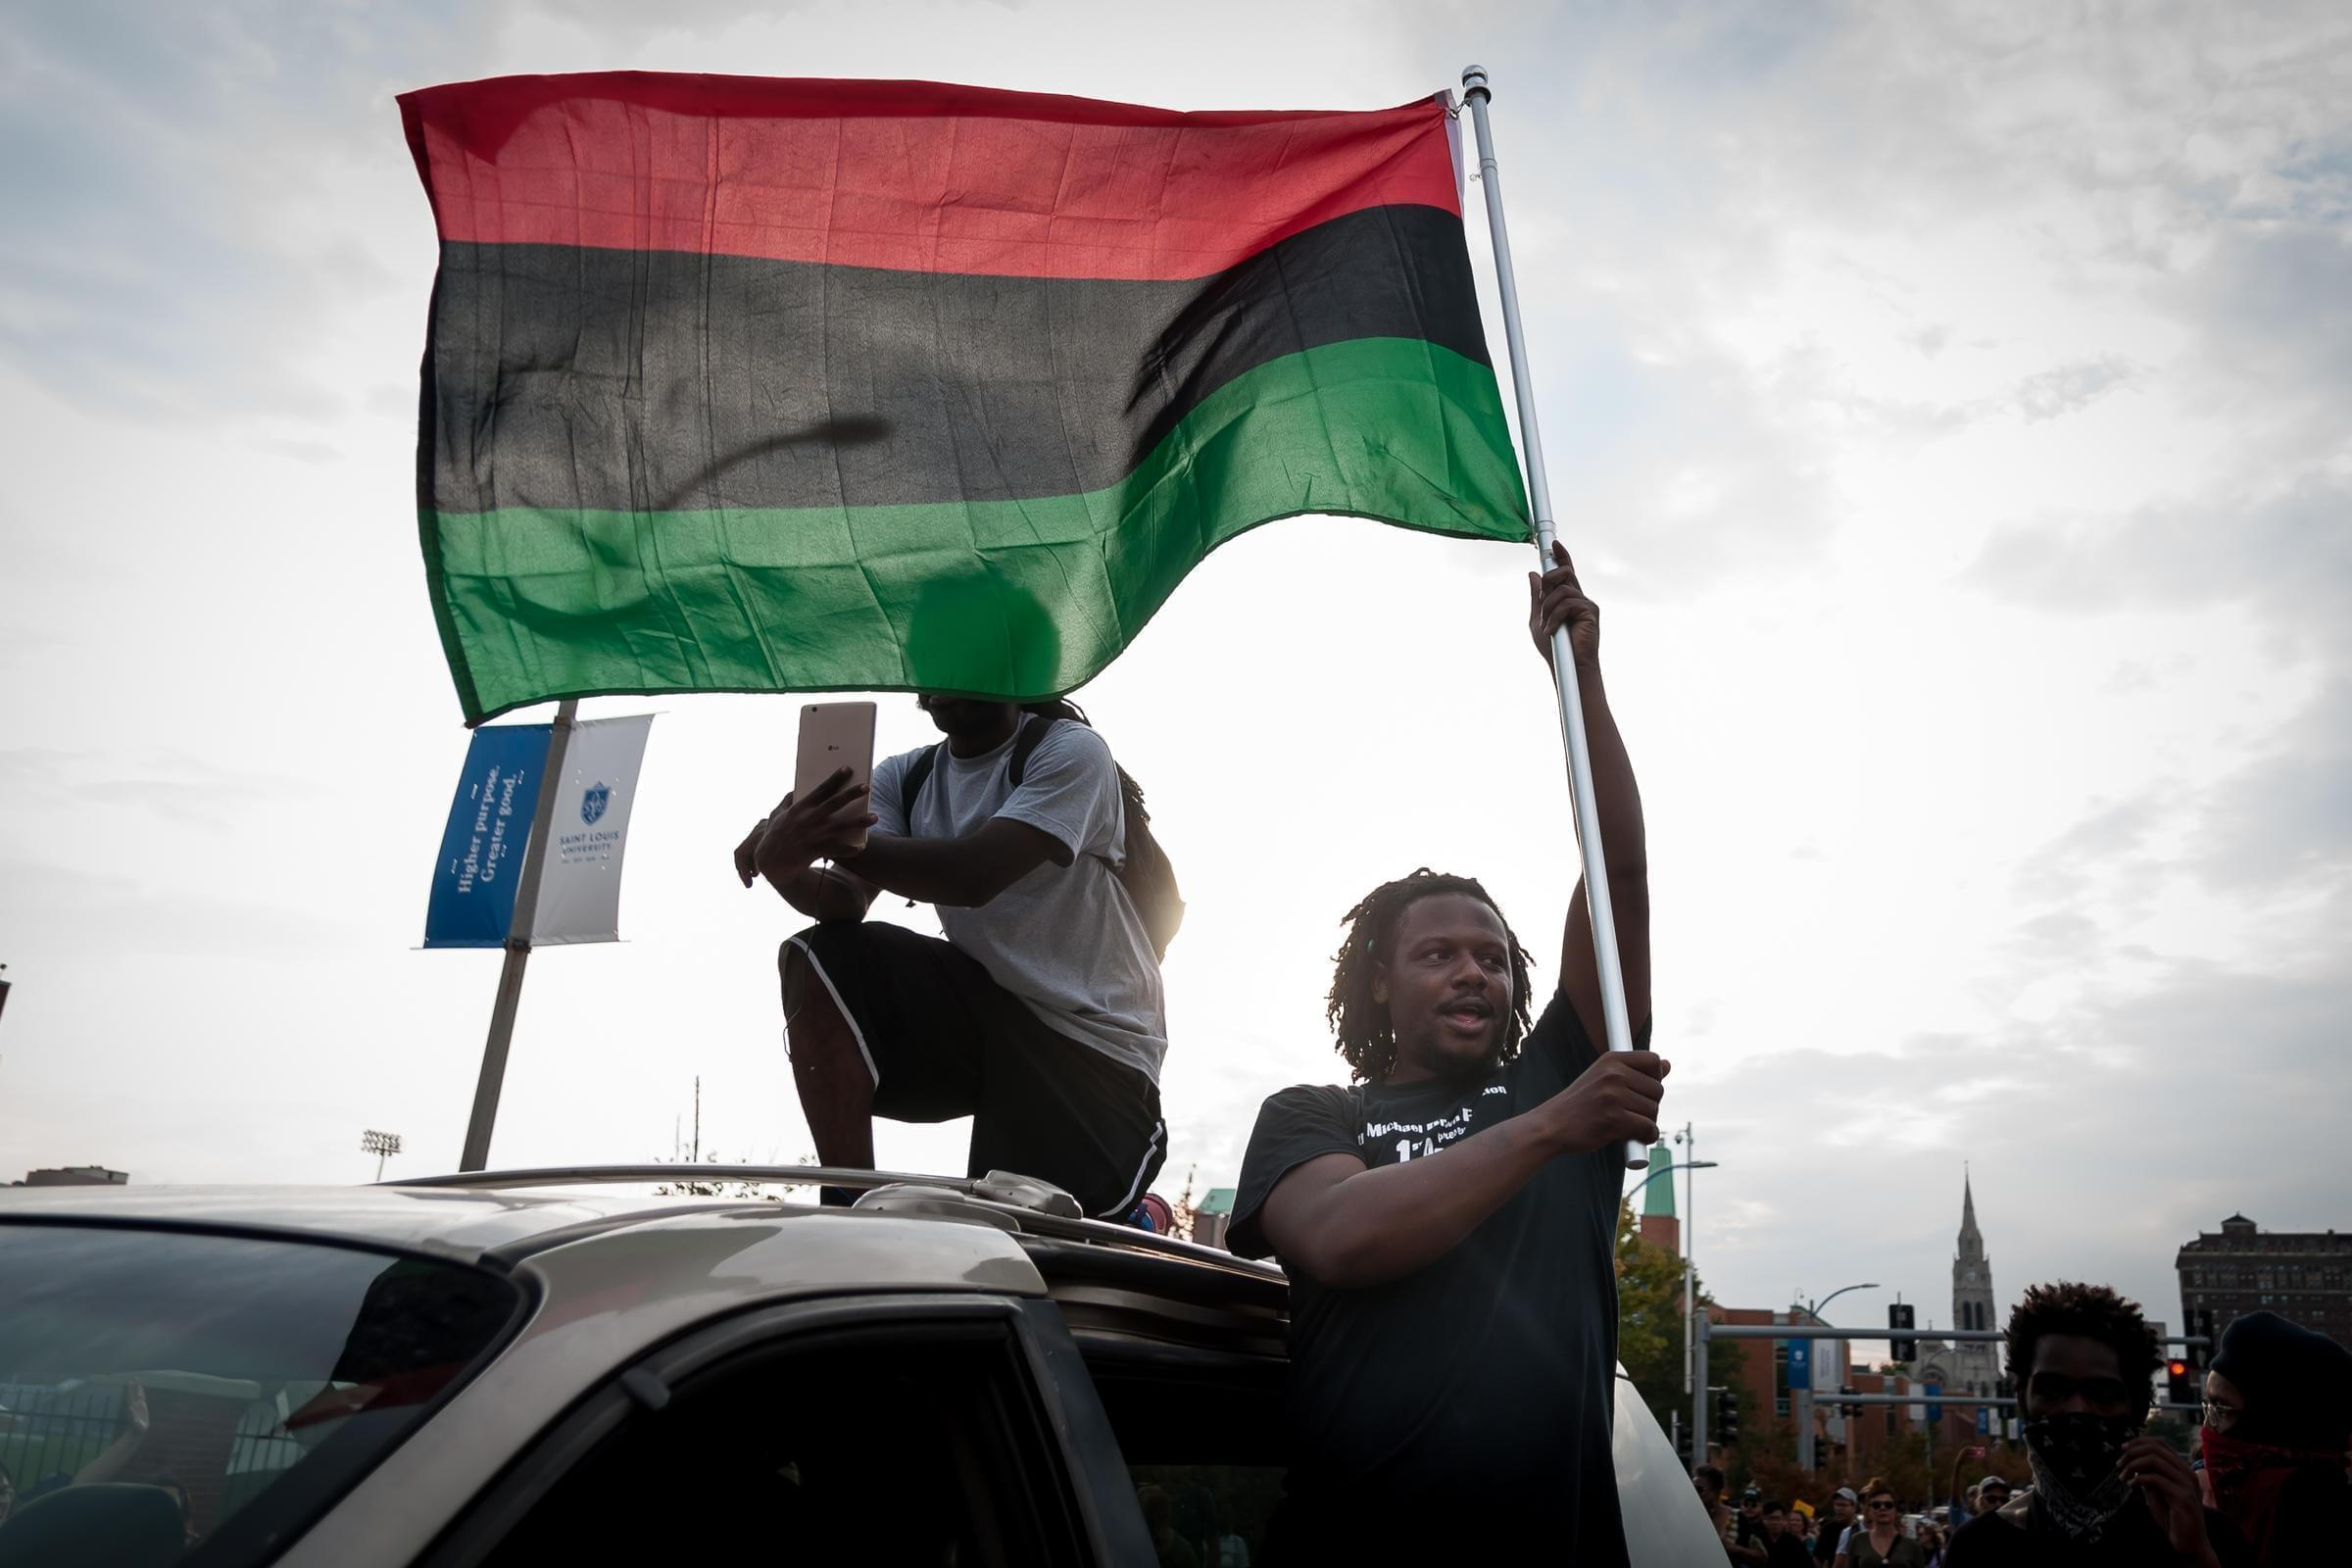 A demonstrator waves a flag from a minivan during protests Sunday over the acquittal of former St. Louis cop Jason Stockey. A third day of protests started peacefully before a smaller group smashed windows downtown.